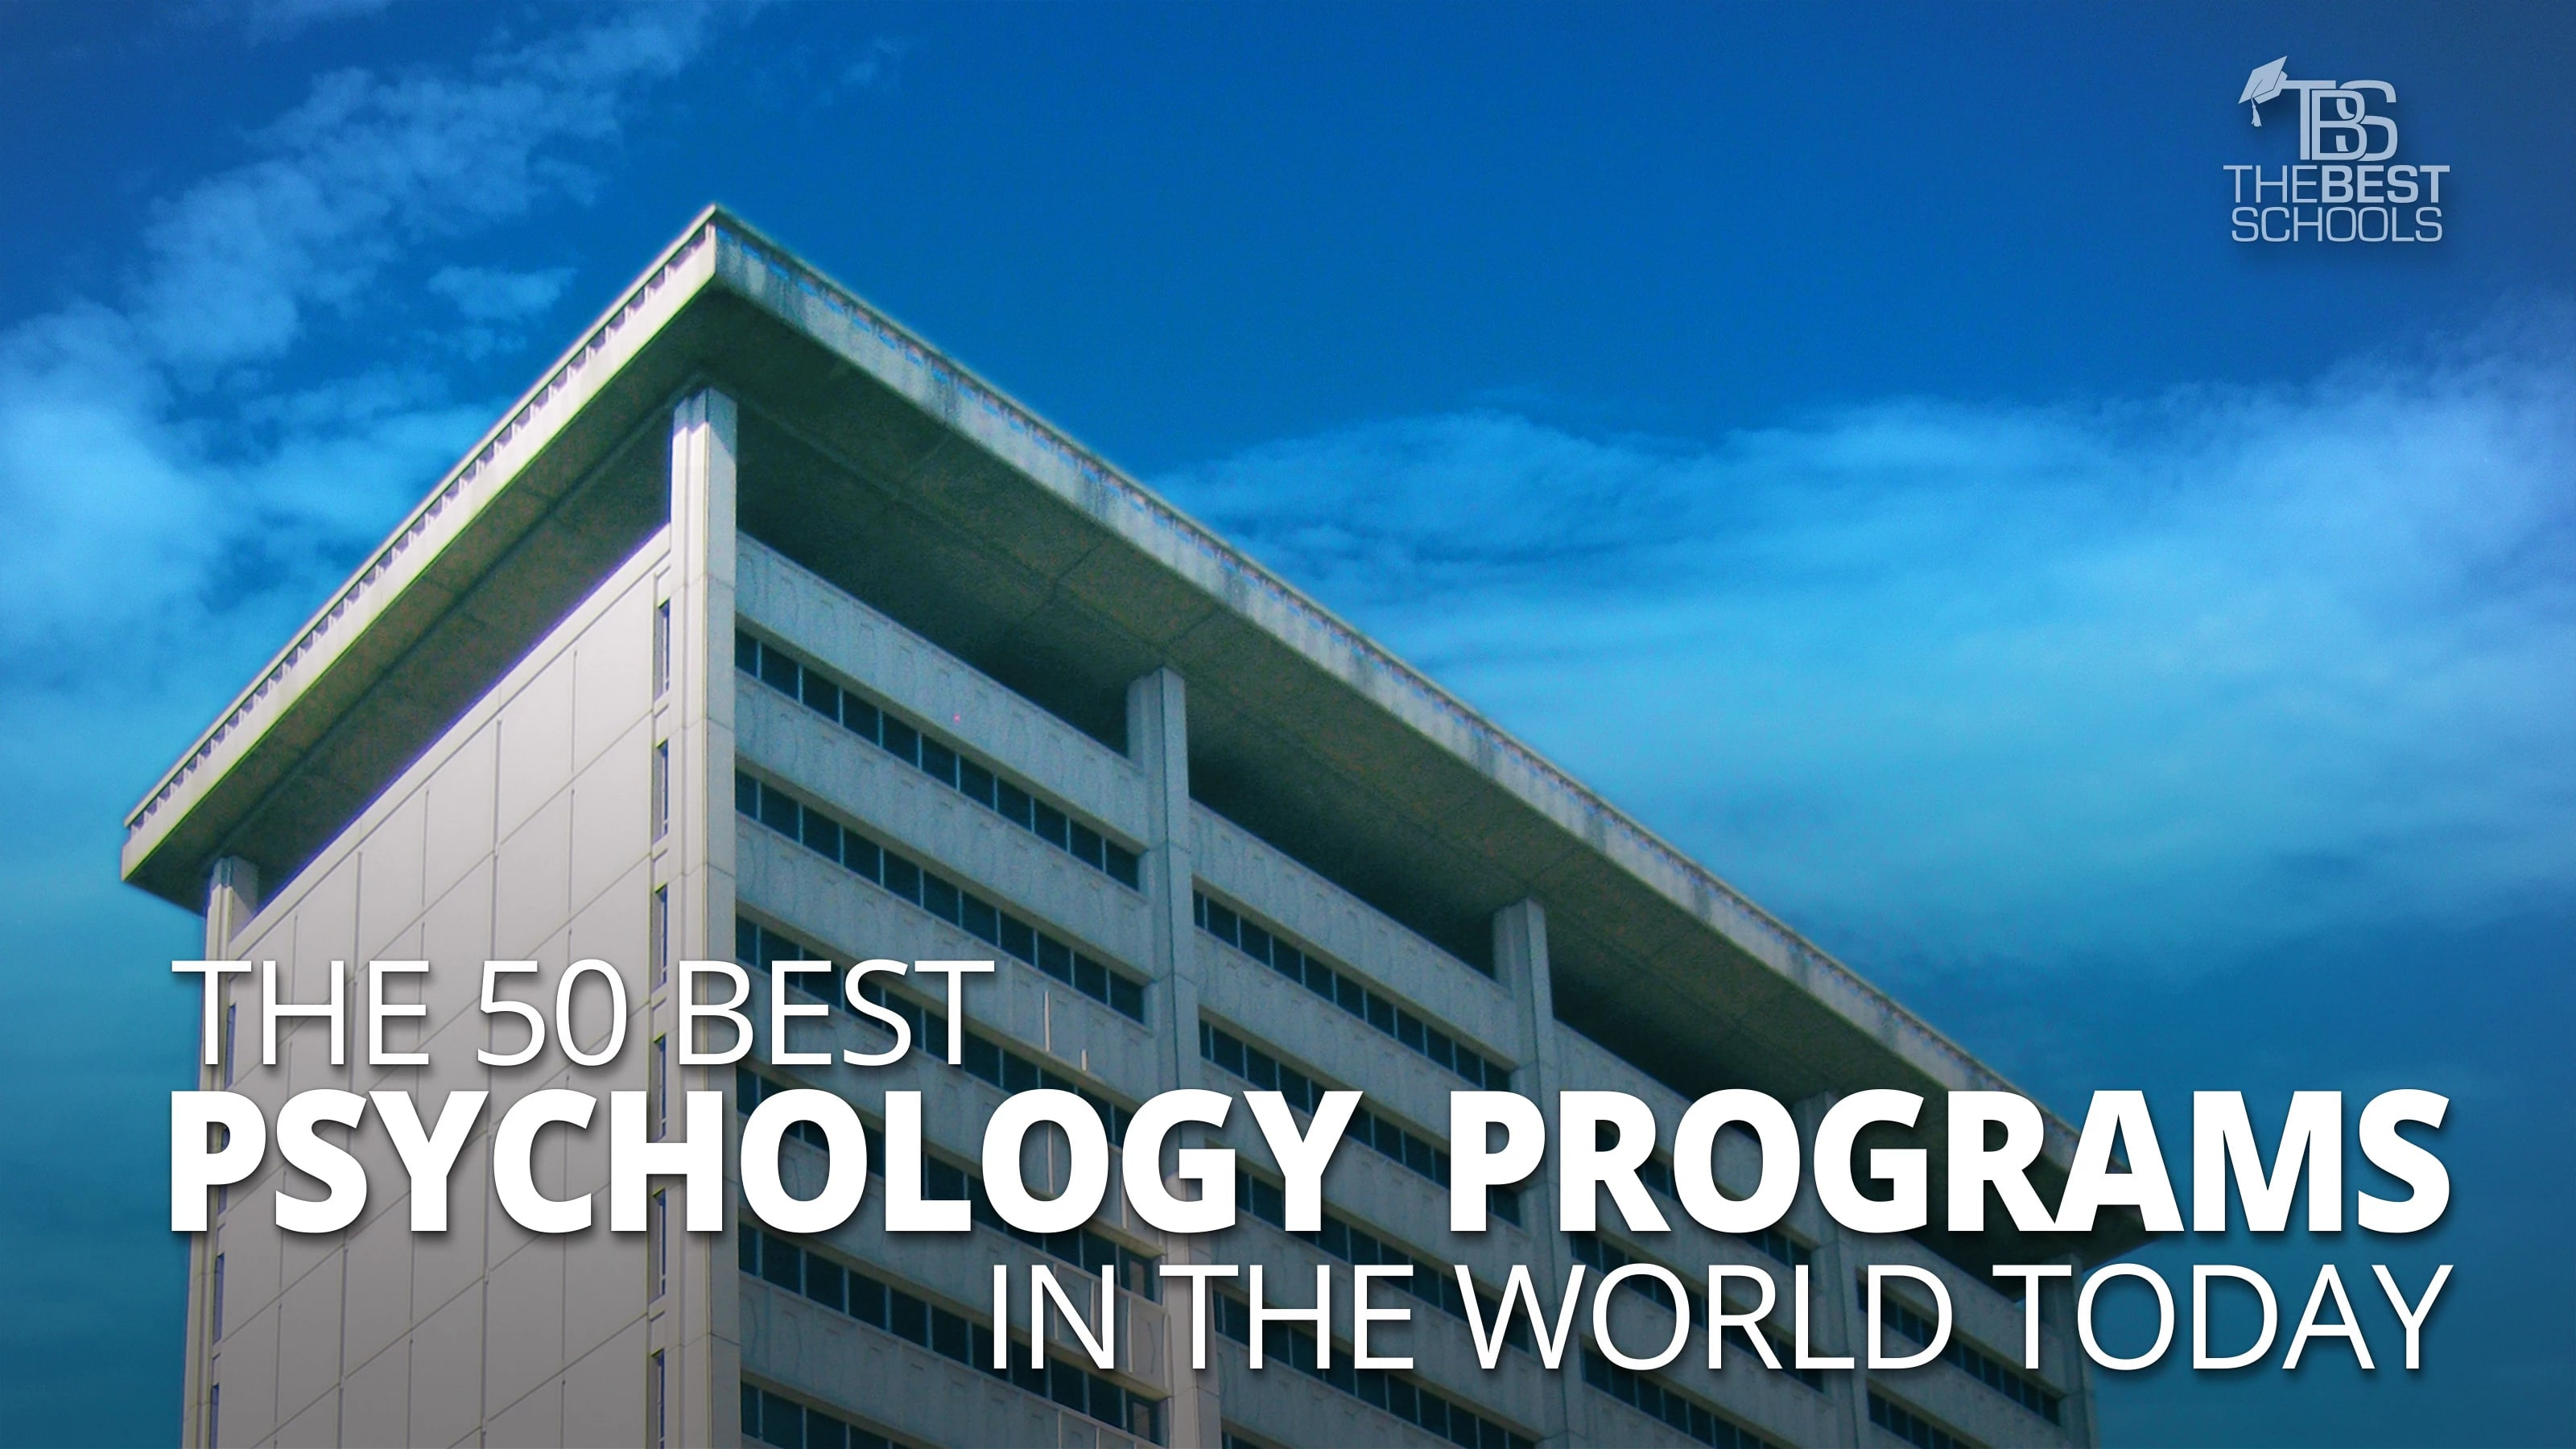 The 50 Best Psychology Programs in the World Today